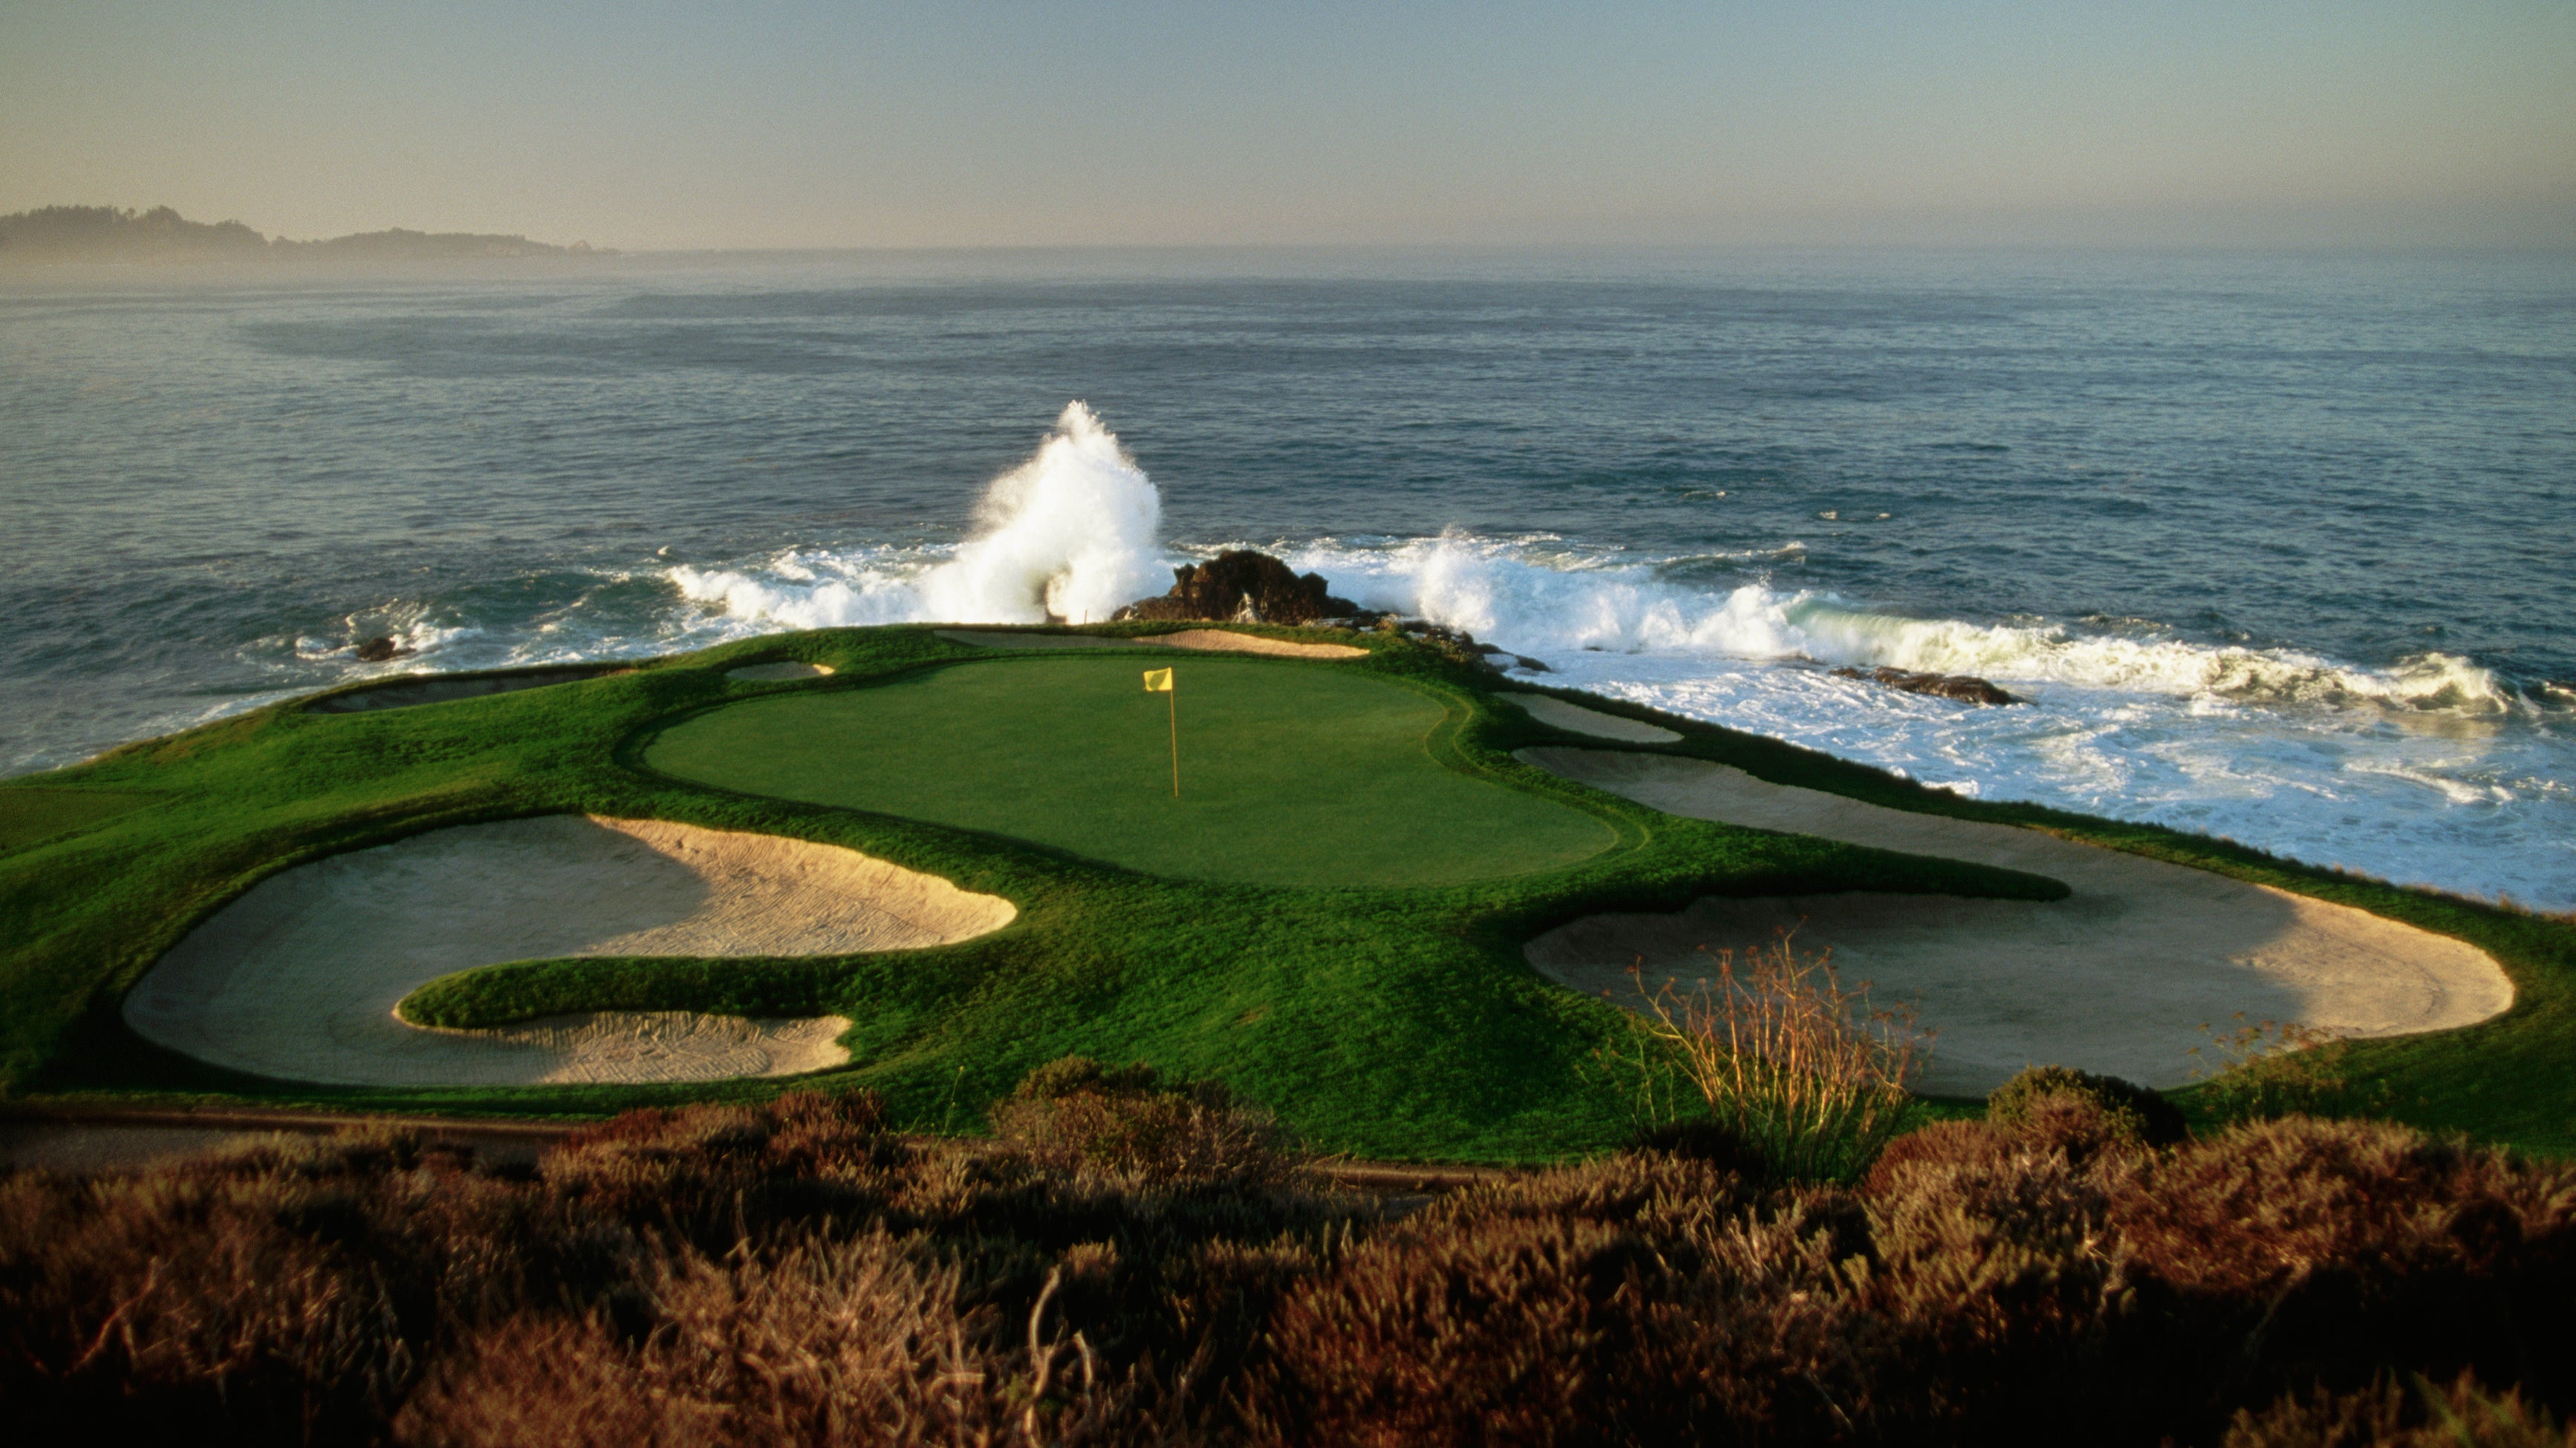 pebble beach joins golf ball cleanup efforts the weather channelpebble beach joins golf ball cleanup efforts